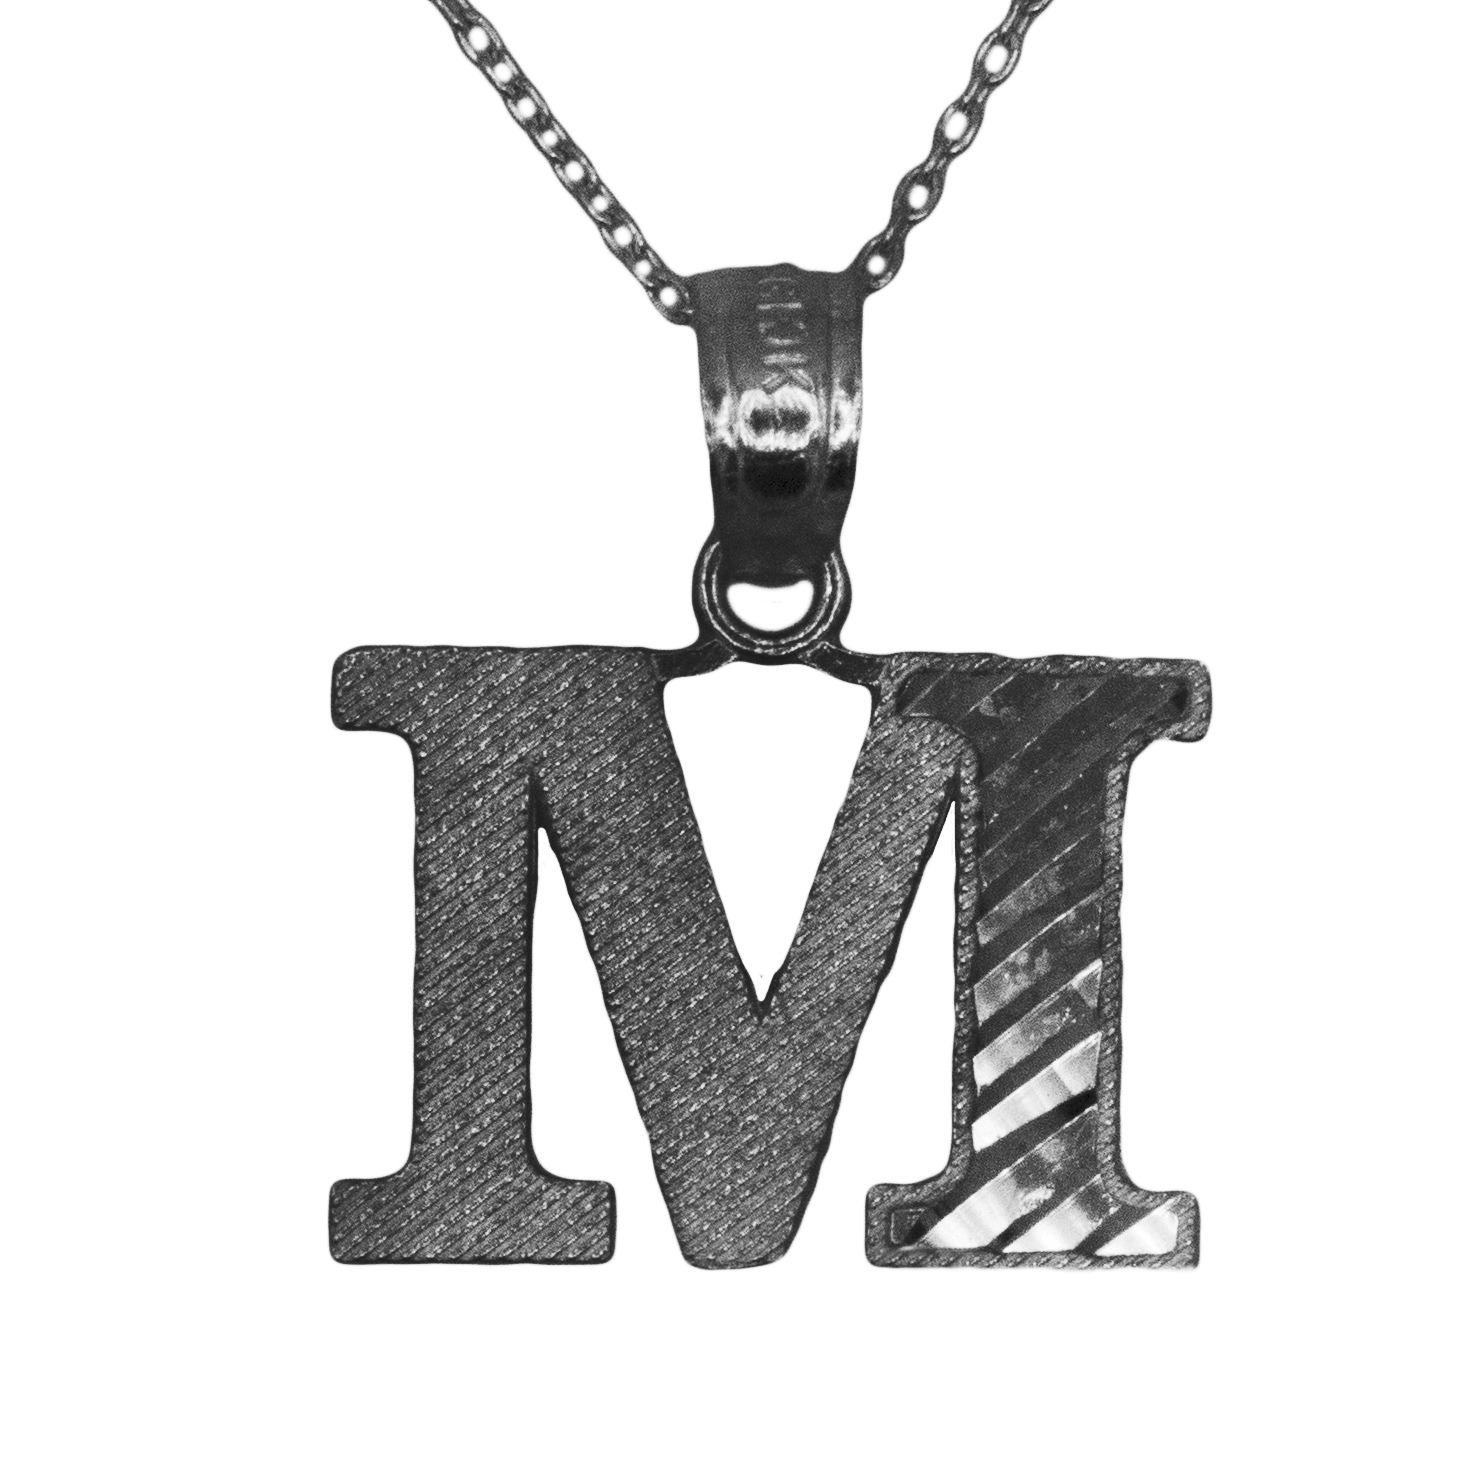 925 Black Rhodium Sterling Silver Letter M Initial with Diamond Cut Finish Pendant Necklace (No Chain)